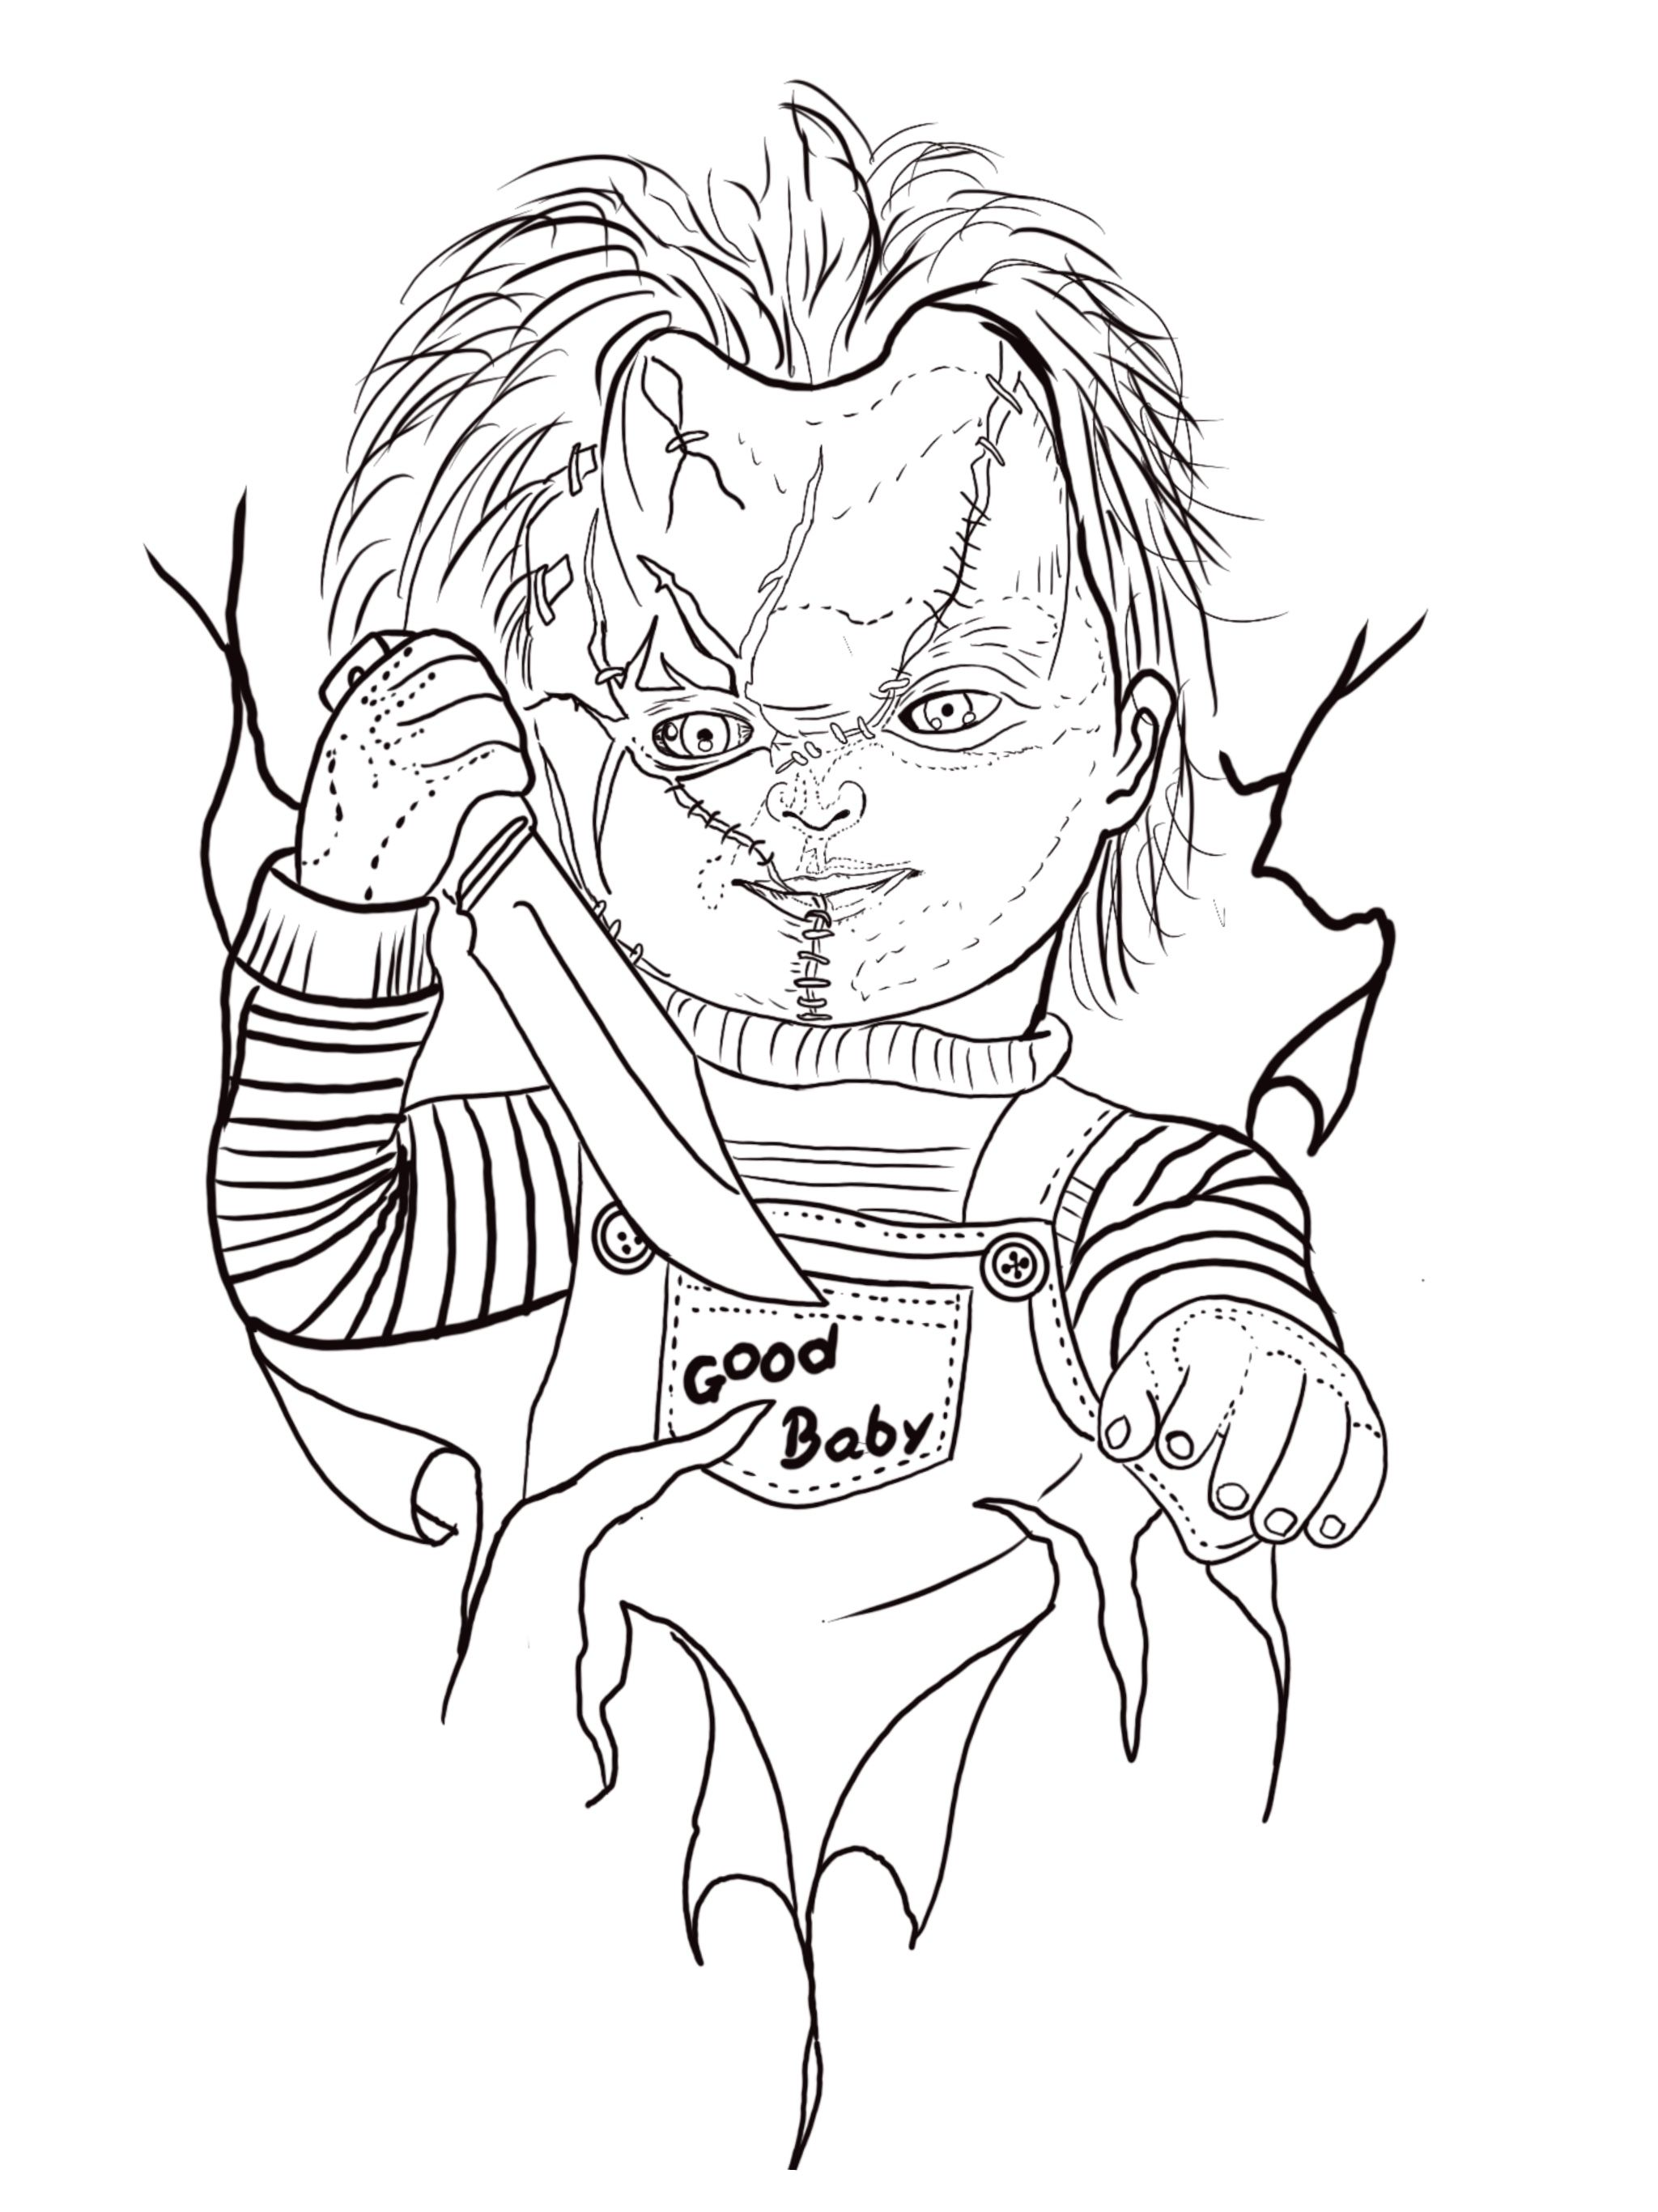 Chucky Tattoo Drawing : chucky, tattoo, drawing, Maicom, Dennis, Tattoo, Outline, Drawing,, Sleeve, Tattoos, Drawings,, Sketch, Design